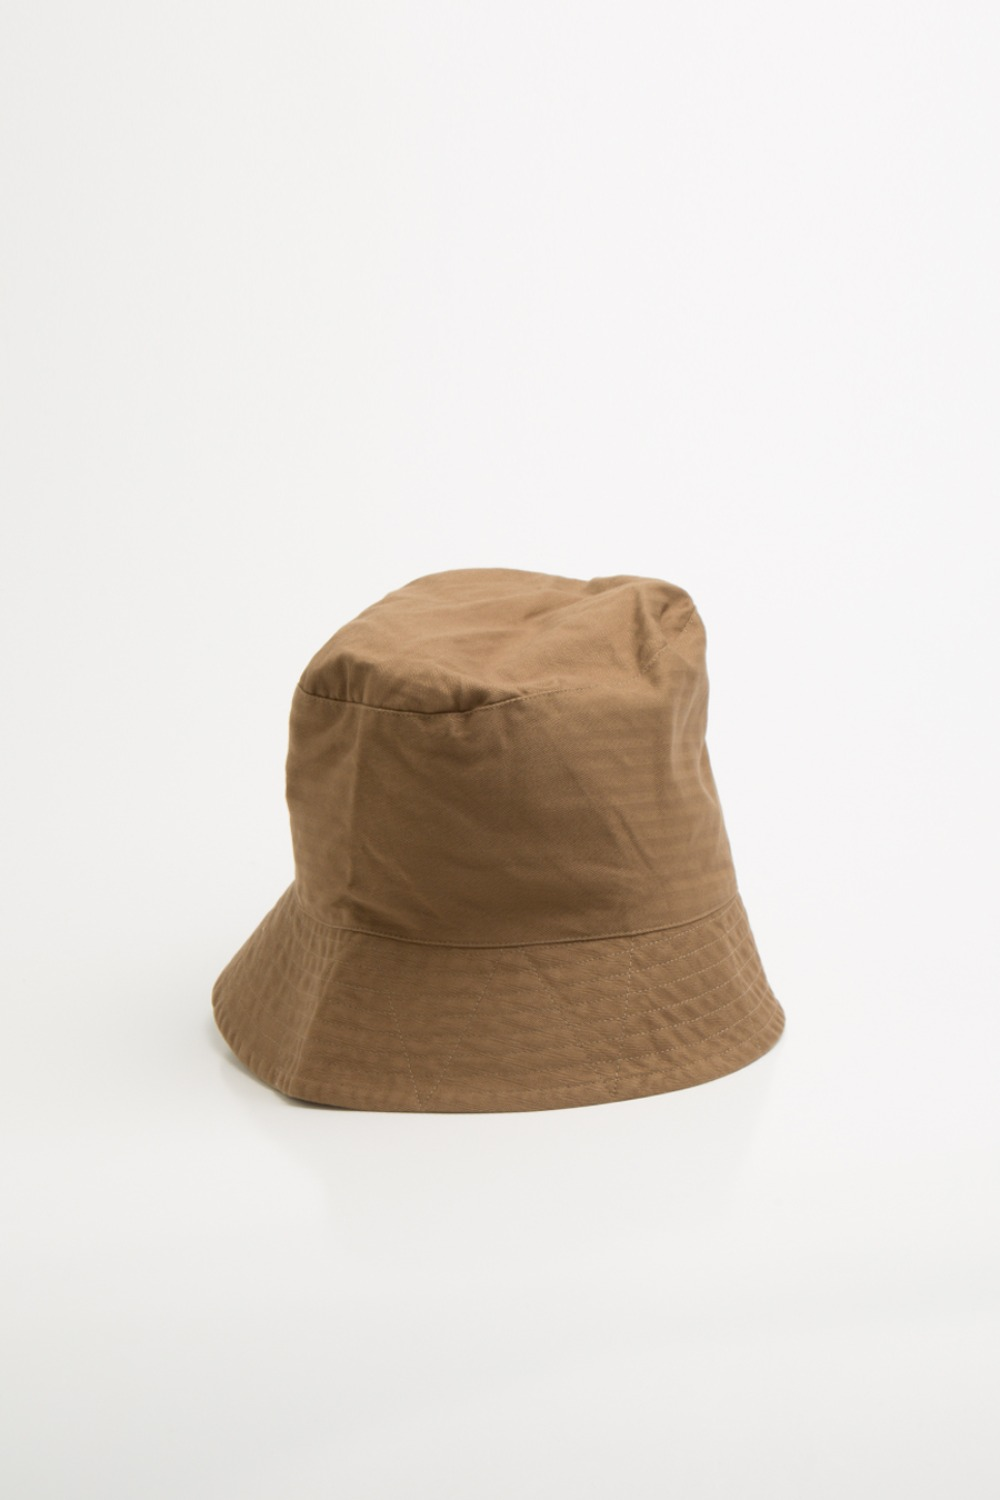 BUCKET HAT BROWN COTTON HERRINGBONE